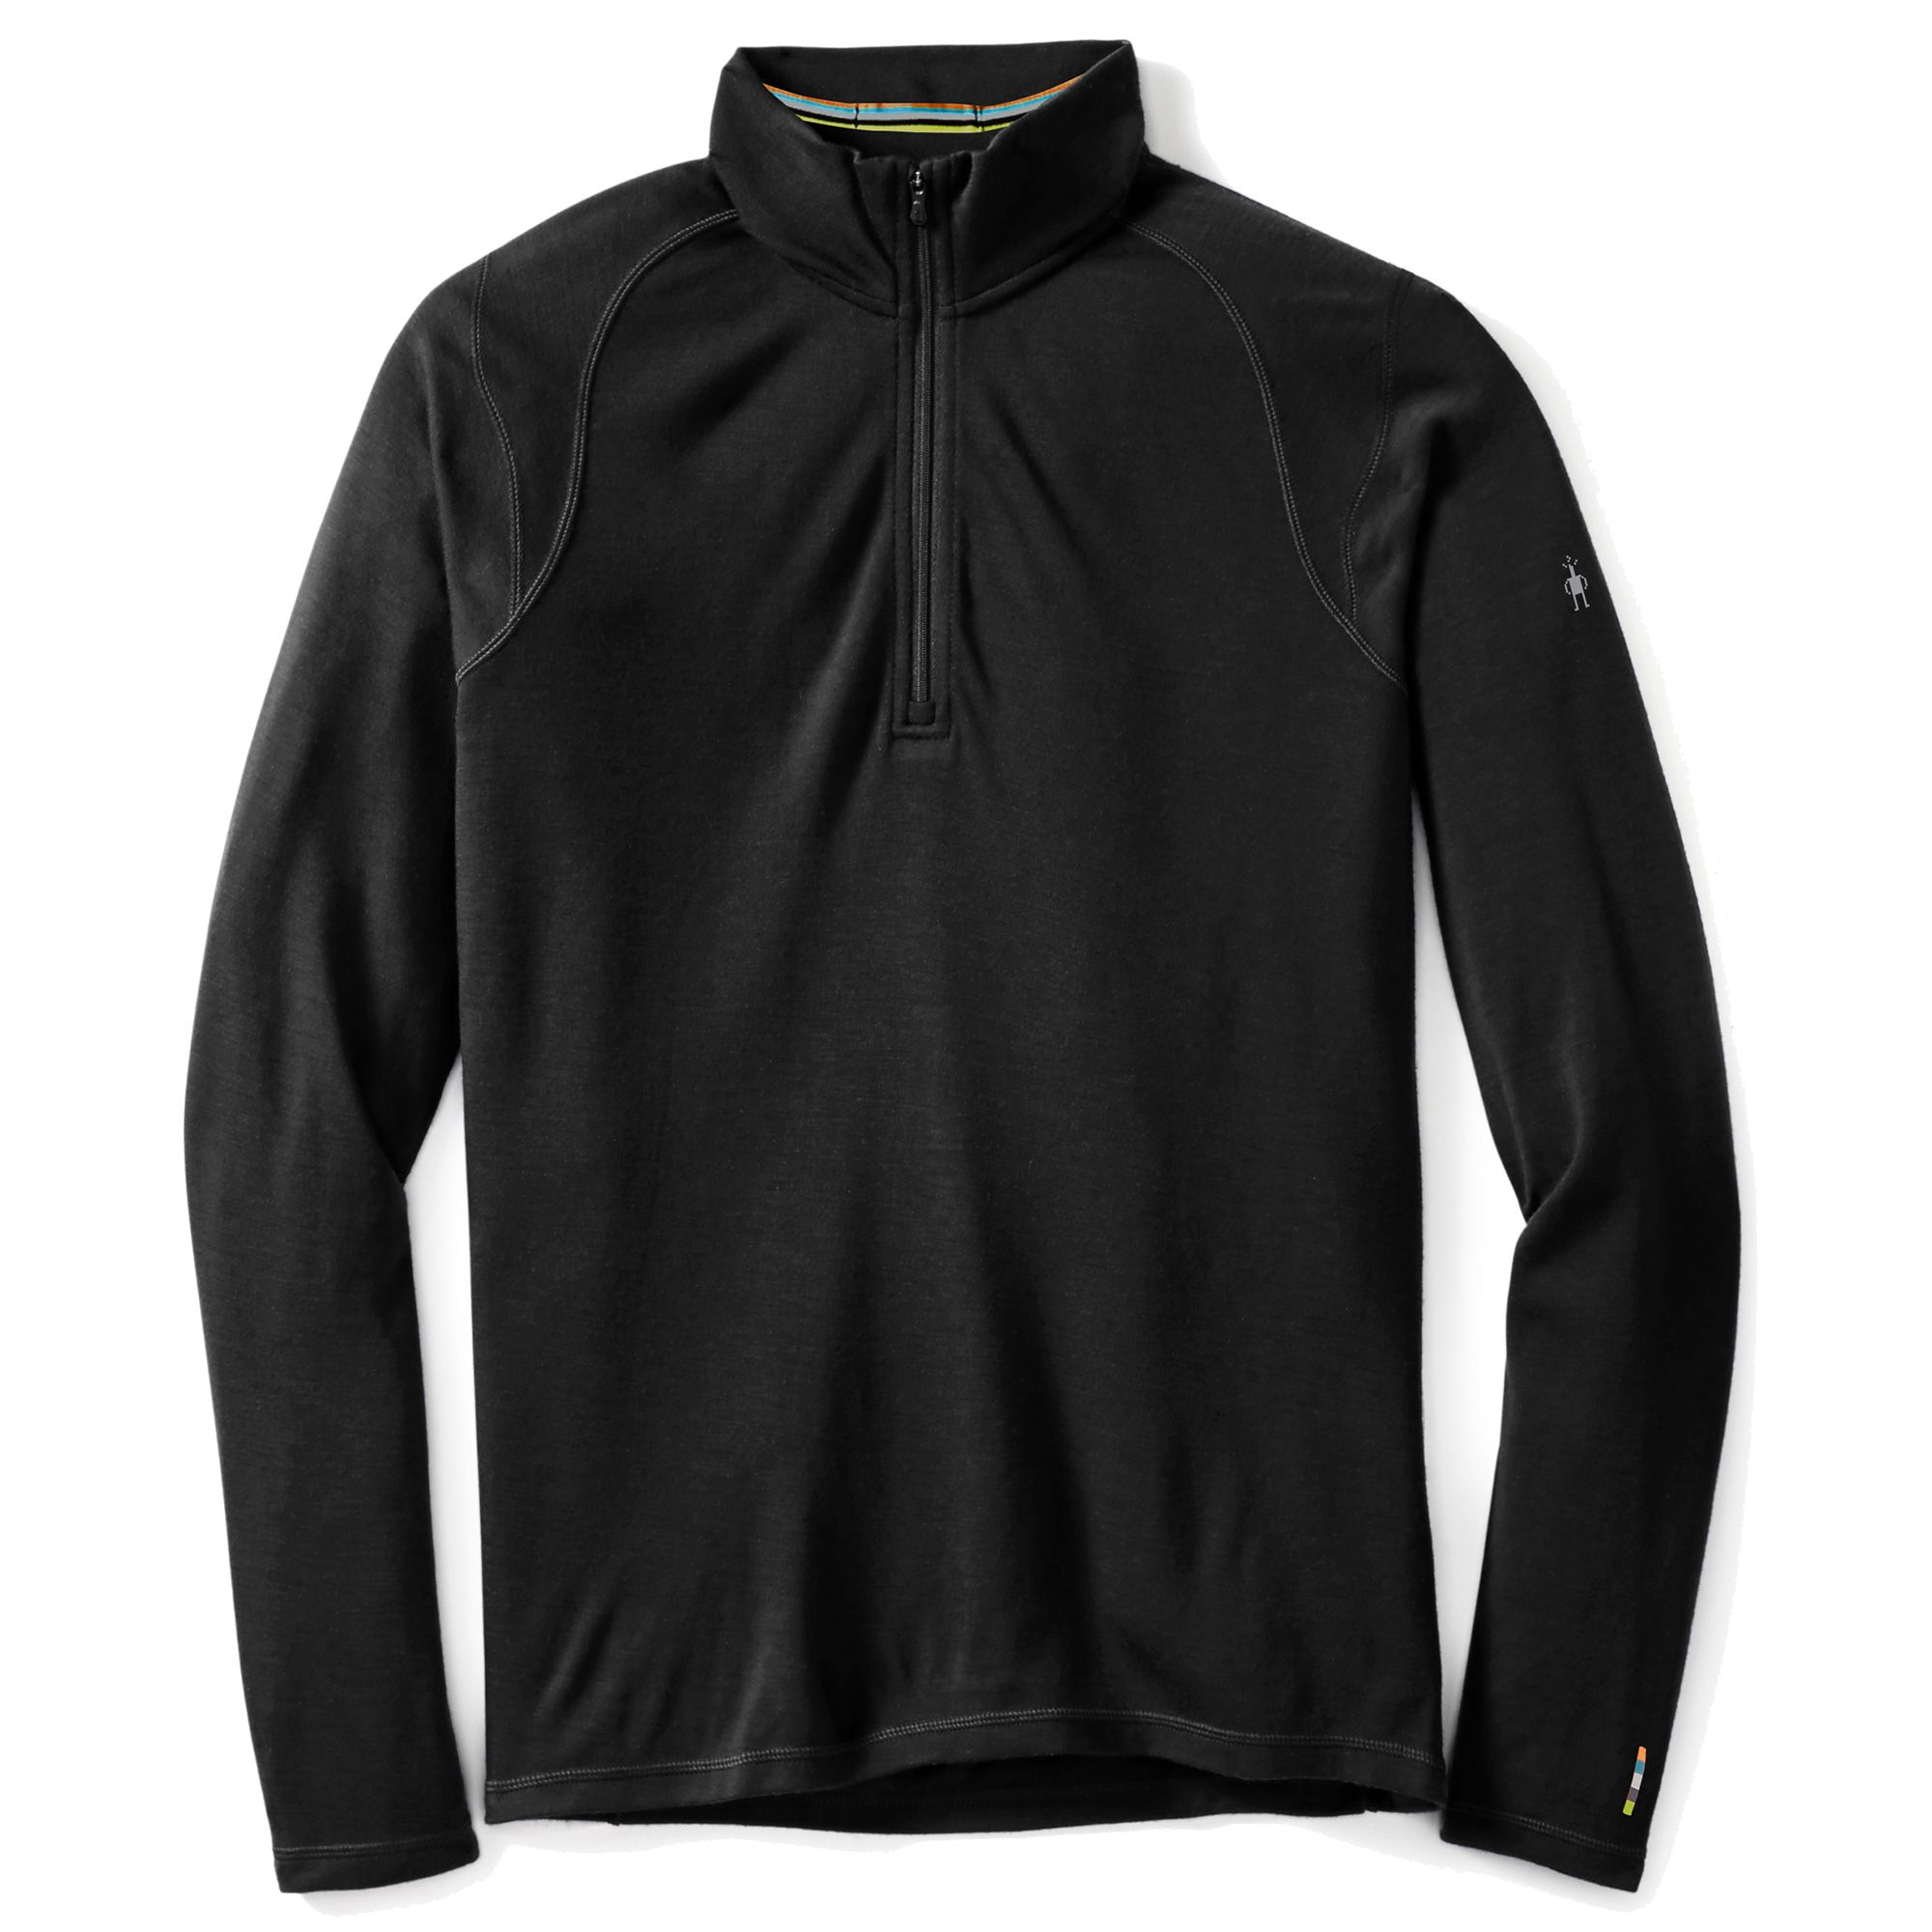 Men's Merino 250 Baselayer 1/4 Zip Boxed